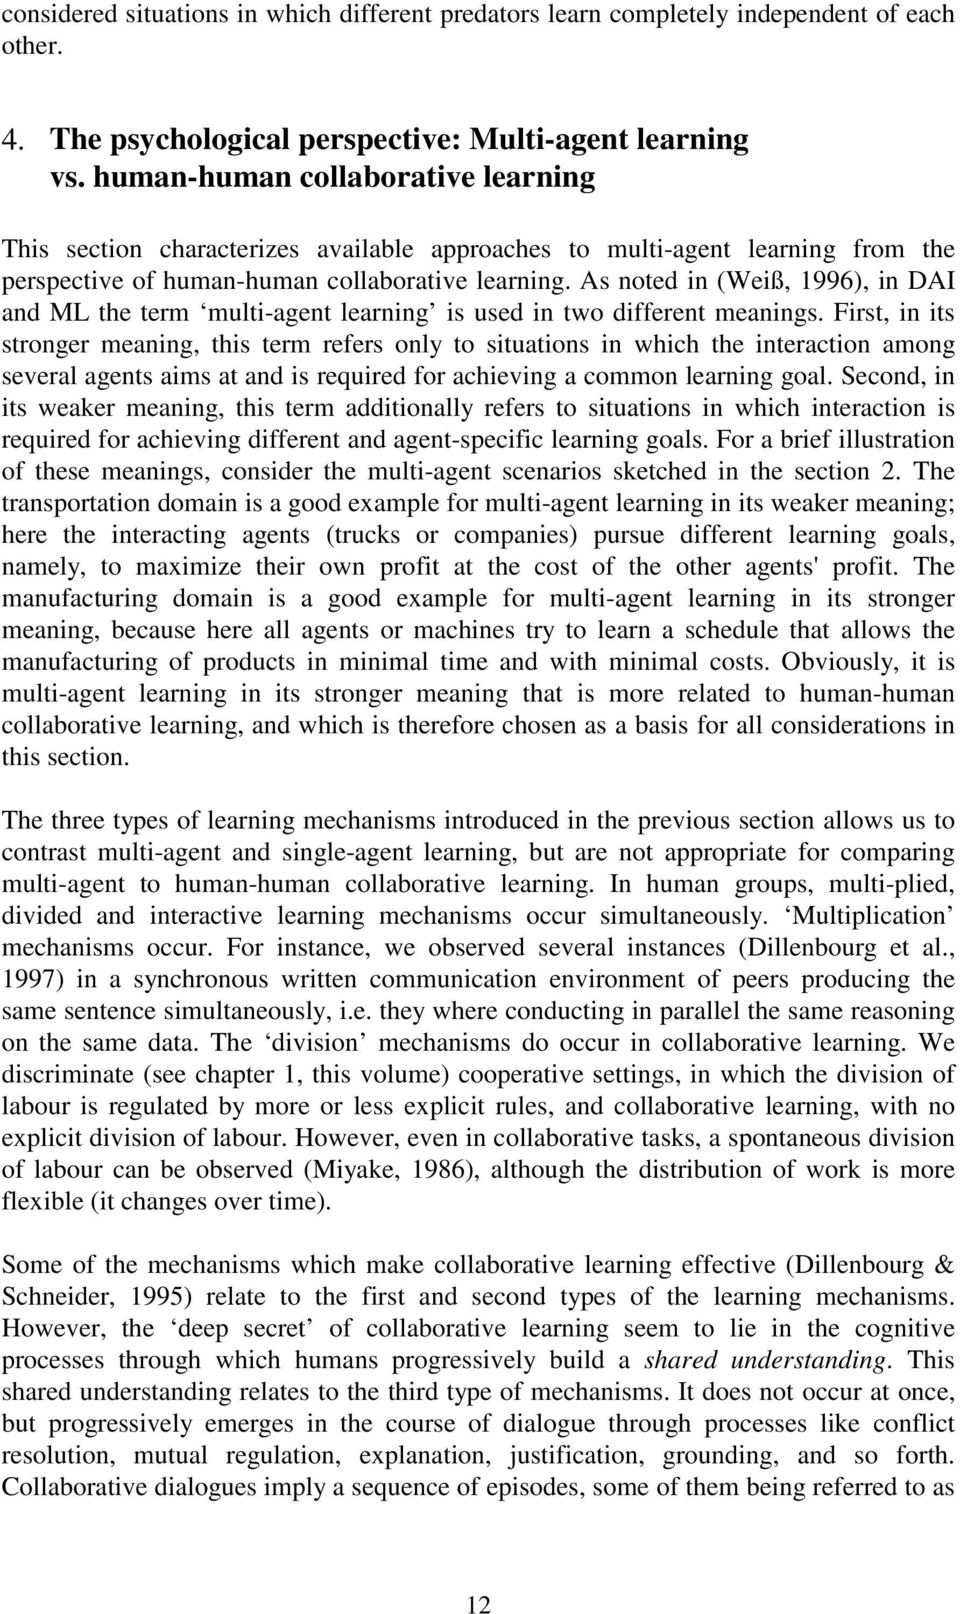 As noted in (Weiß, 1996), in DAI and ML the term multi-agent learning is used in two different meanings.